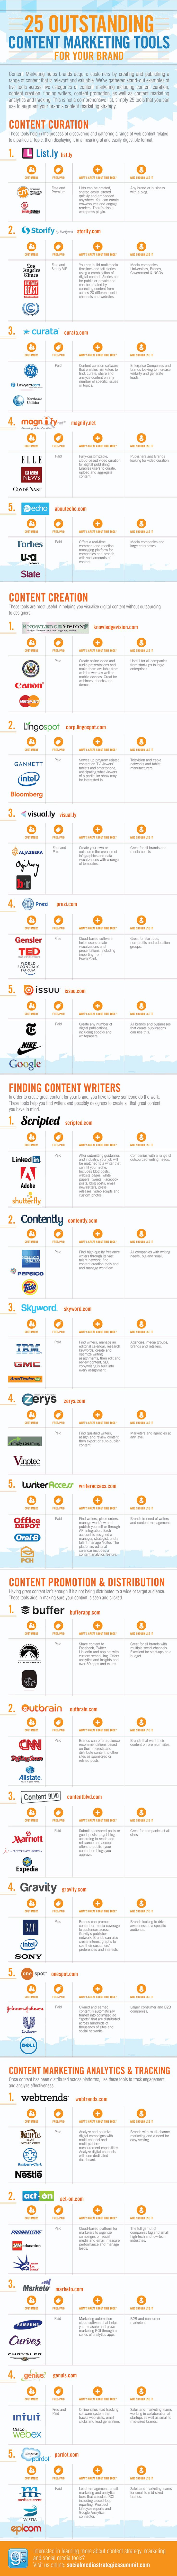 25 Excellent Content Marketing Tools for Your Brand. Infographic